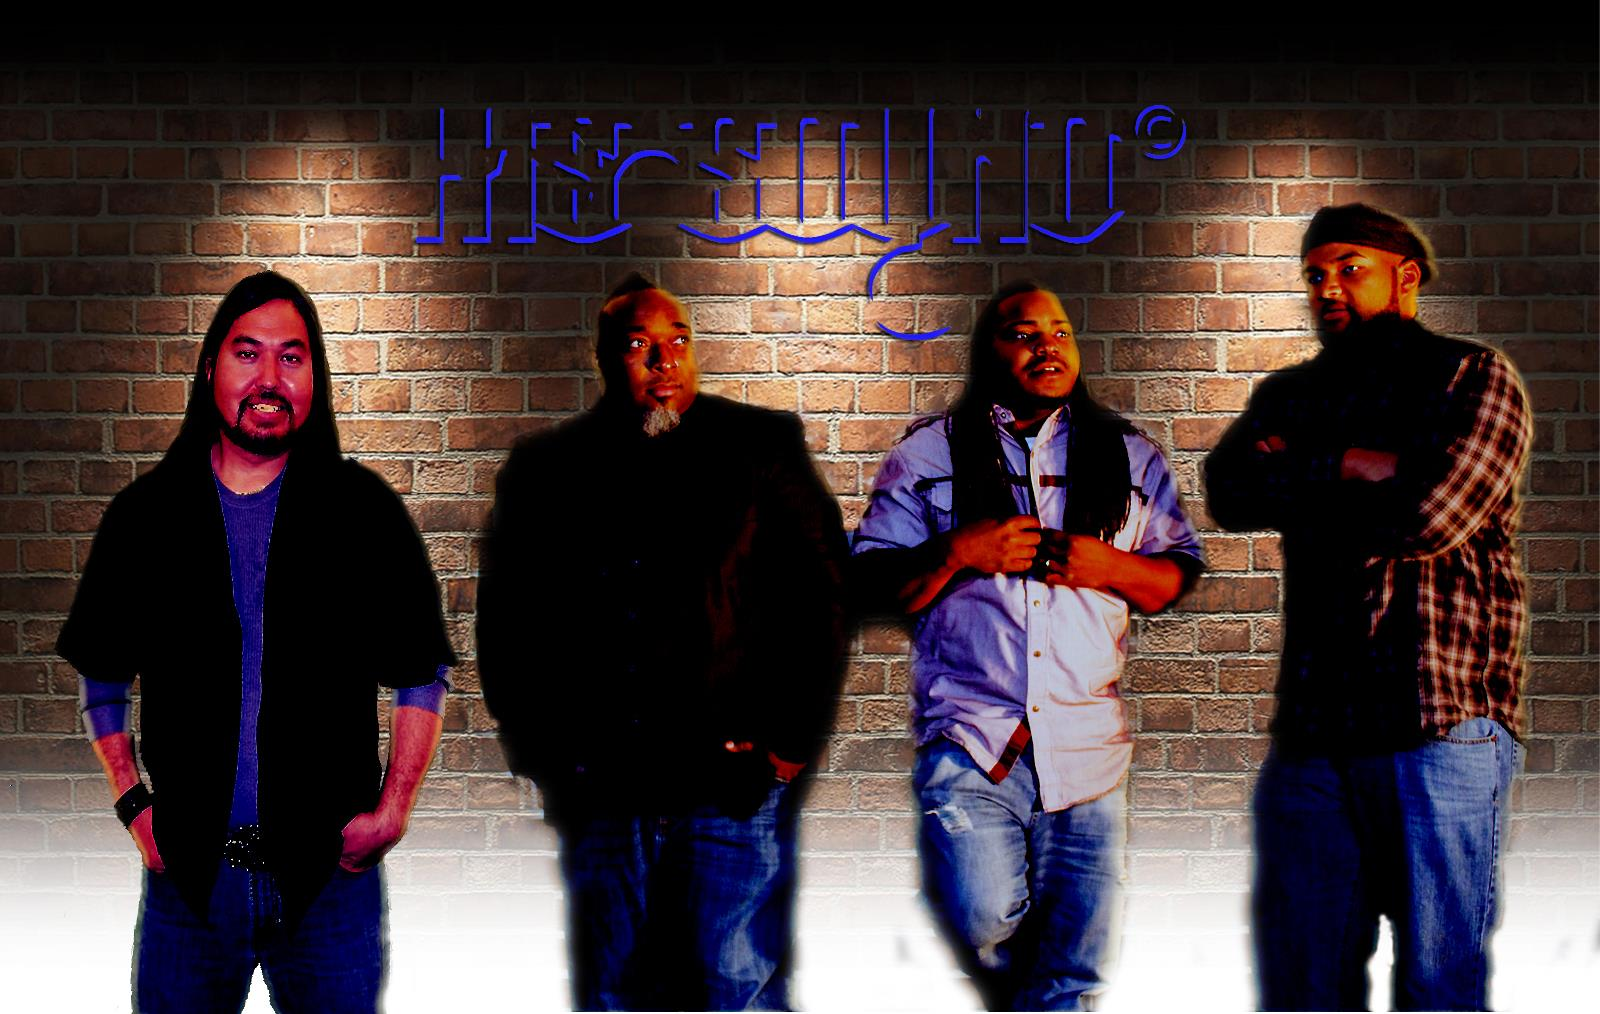 HisSound the BAND